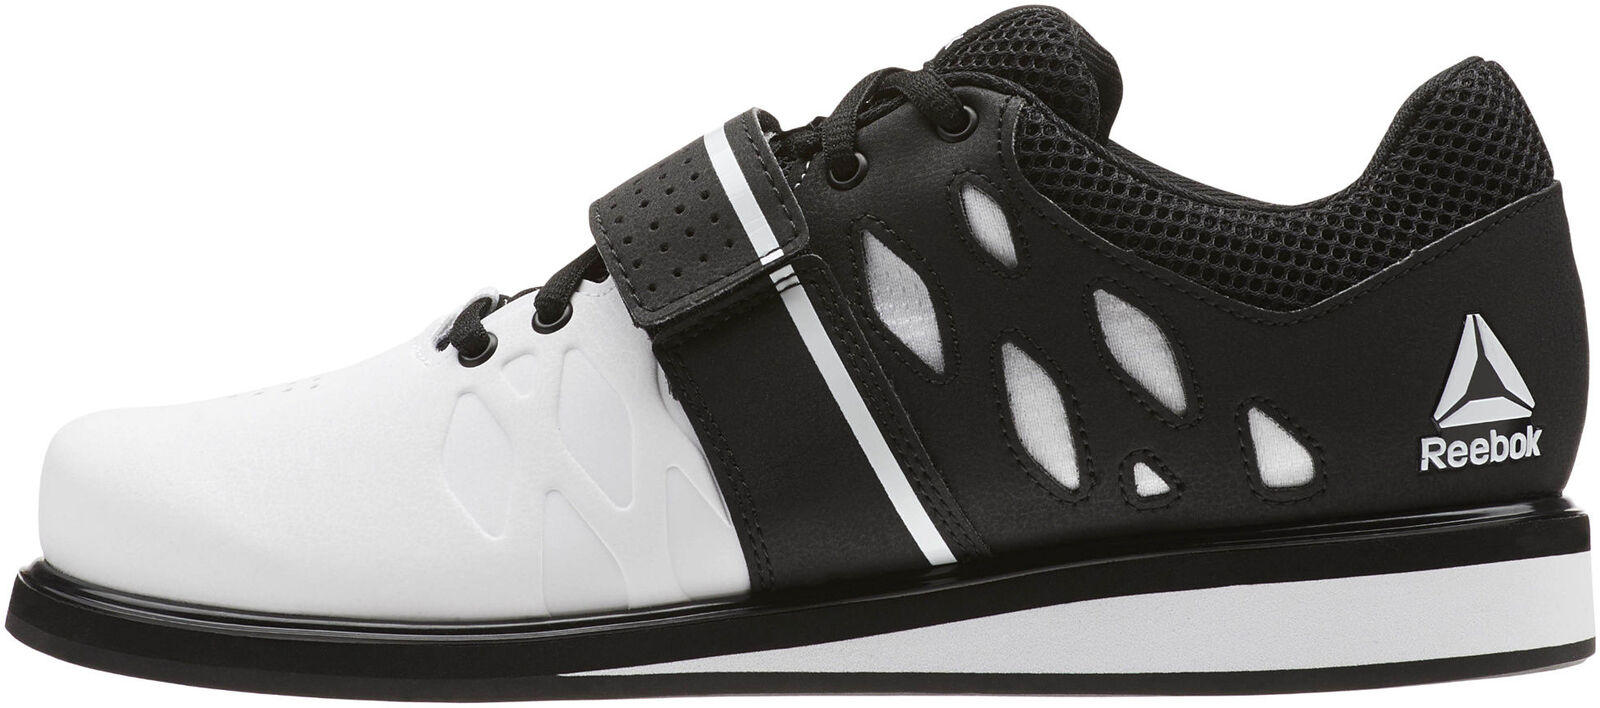 Reebok Lifter PR Mens Weightlifting shoes White Bodybuilding Boots Gym Training